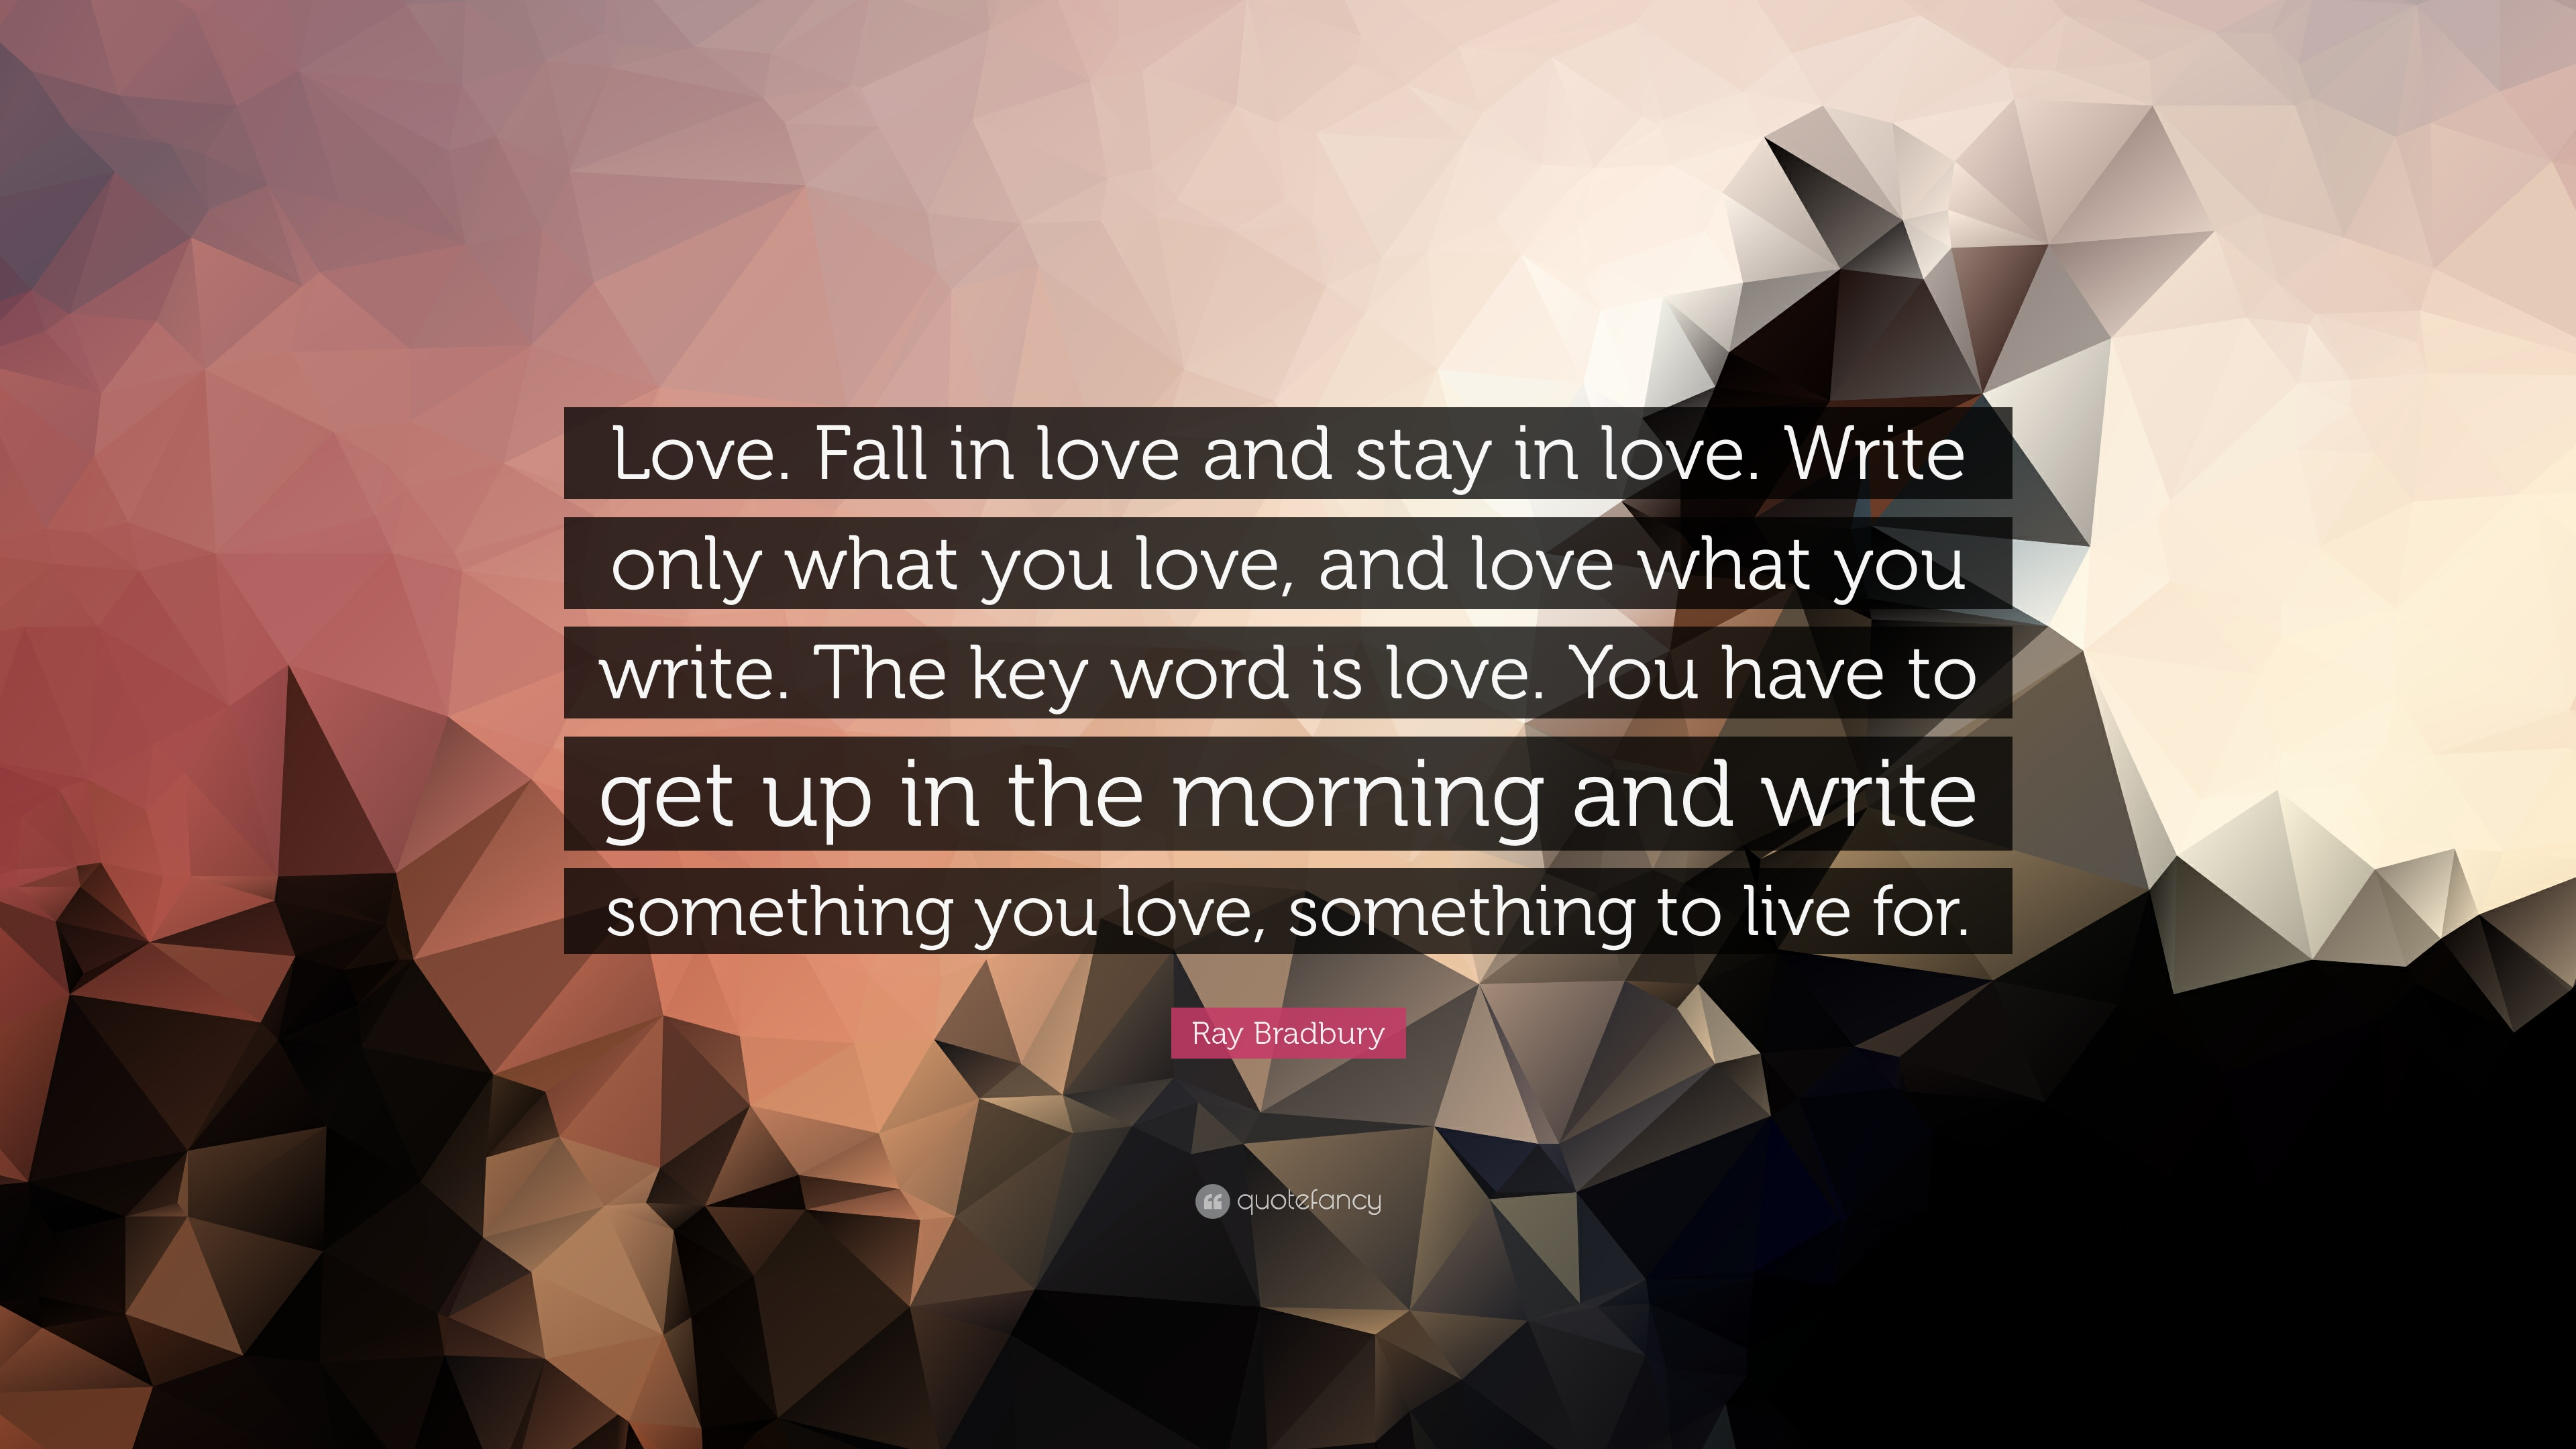 patience is the key to love quotes valentine day ray bradbury quote love fall in and stay write